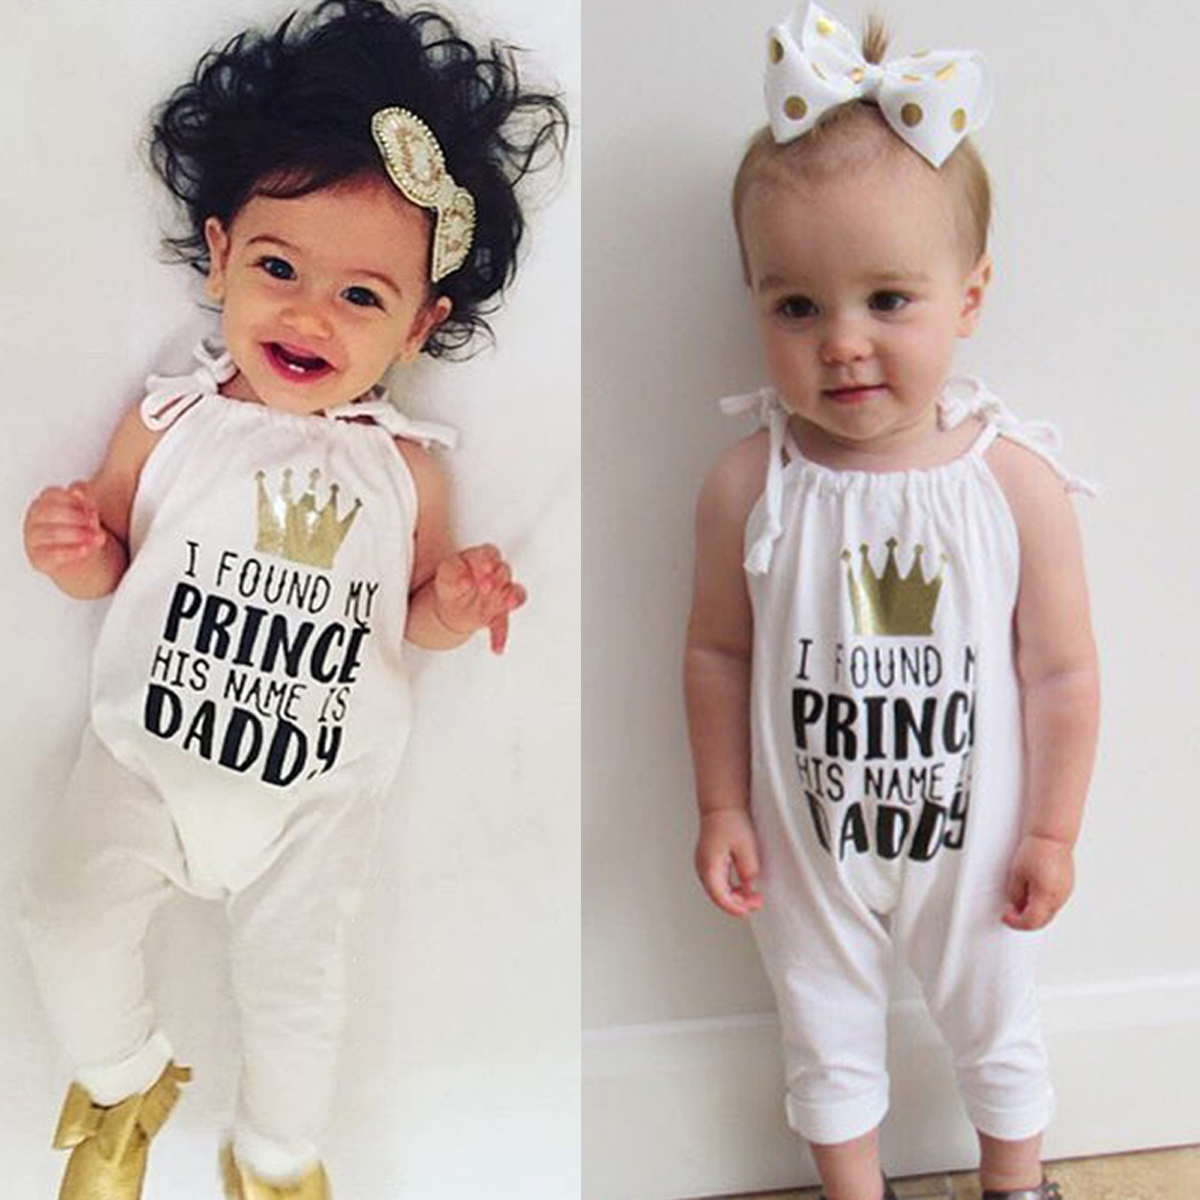 Newborn Infant Baby Girl Princess Romper Letter Print Jumpsuit Outfit Playsuit Clothes Sleeveless DADDY Romper Crown Jumpsuit newborn infant baby girl clothes strap lace floral romper jumpsuit outfit summer cotton backless one pieces outfit baby onesie